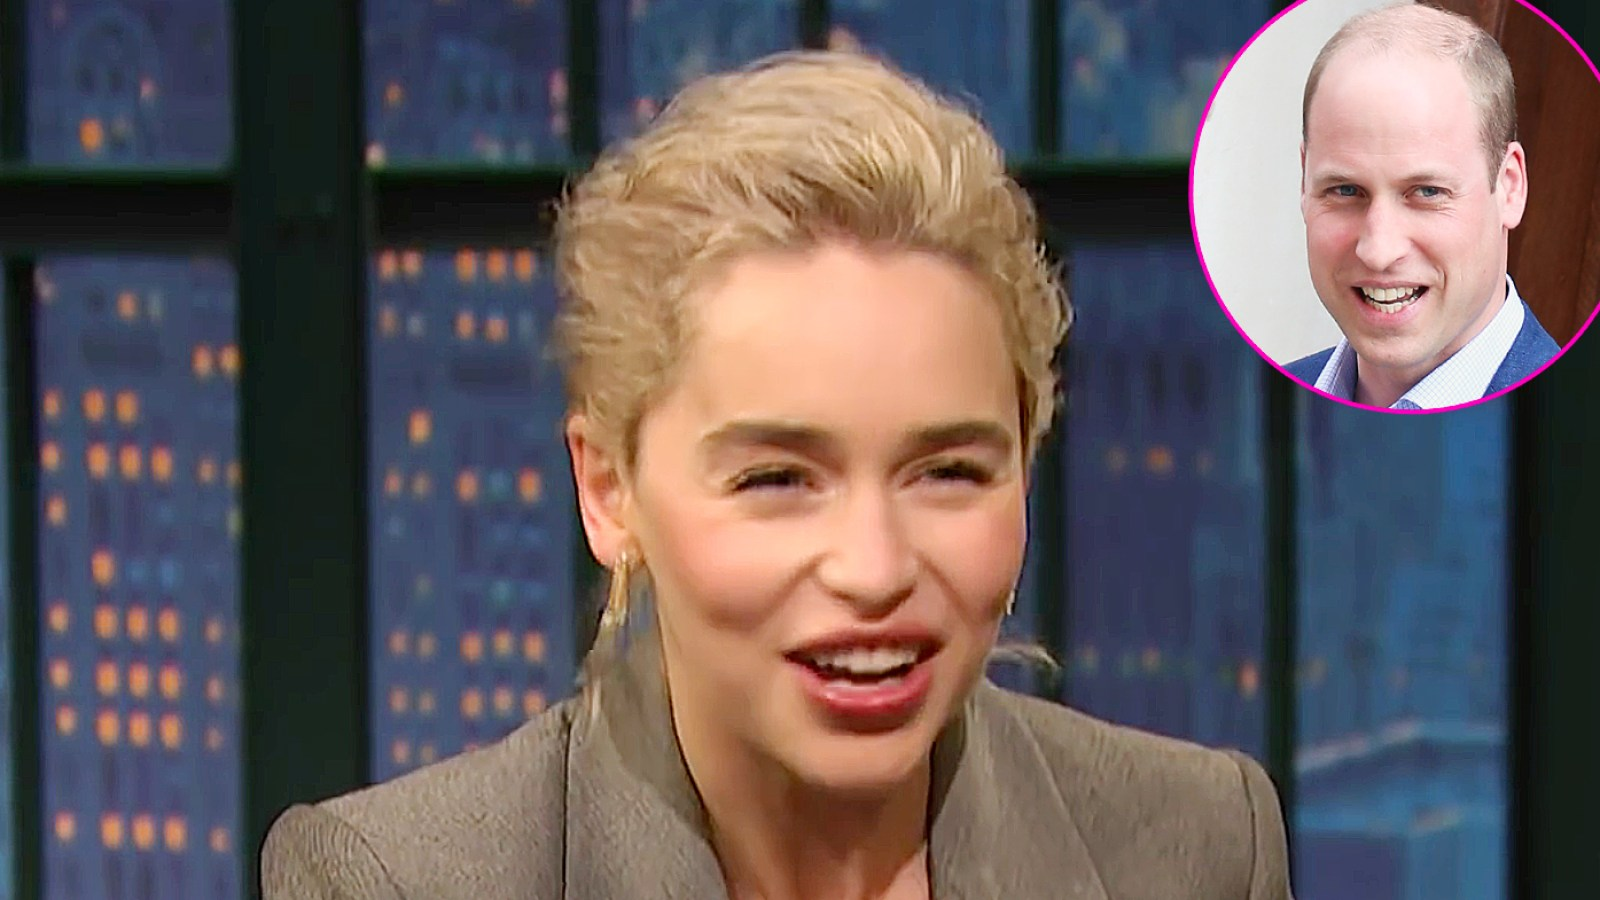 Emilia clarke cringes over awkward meeting with prince william m4hsunfo